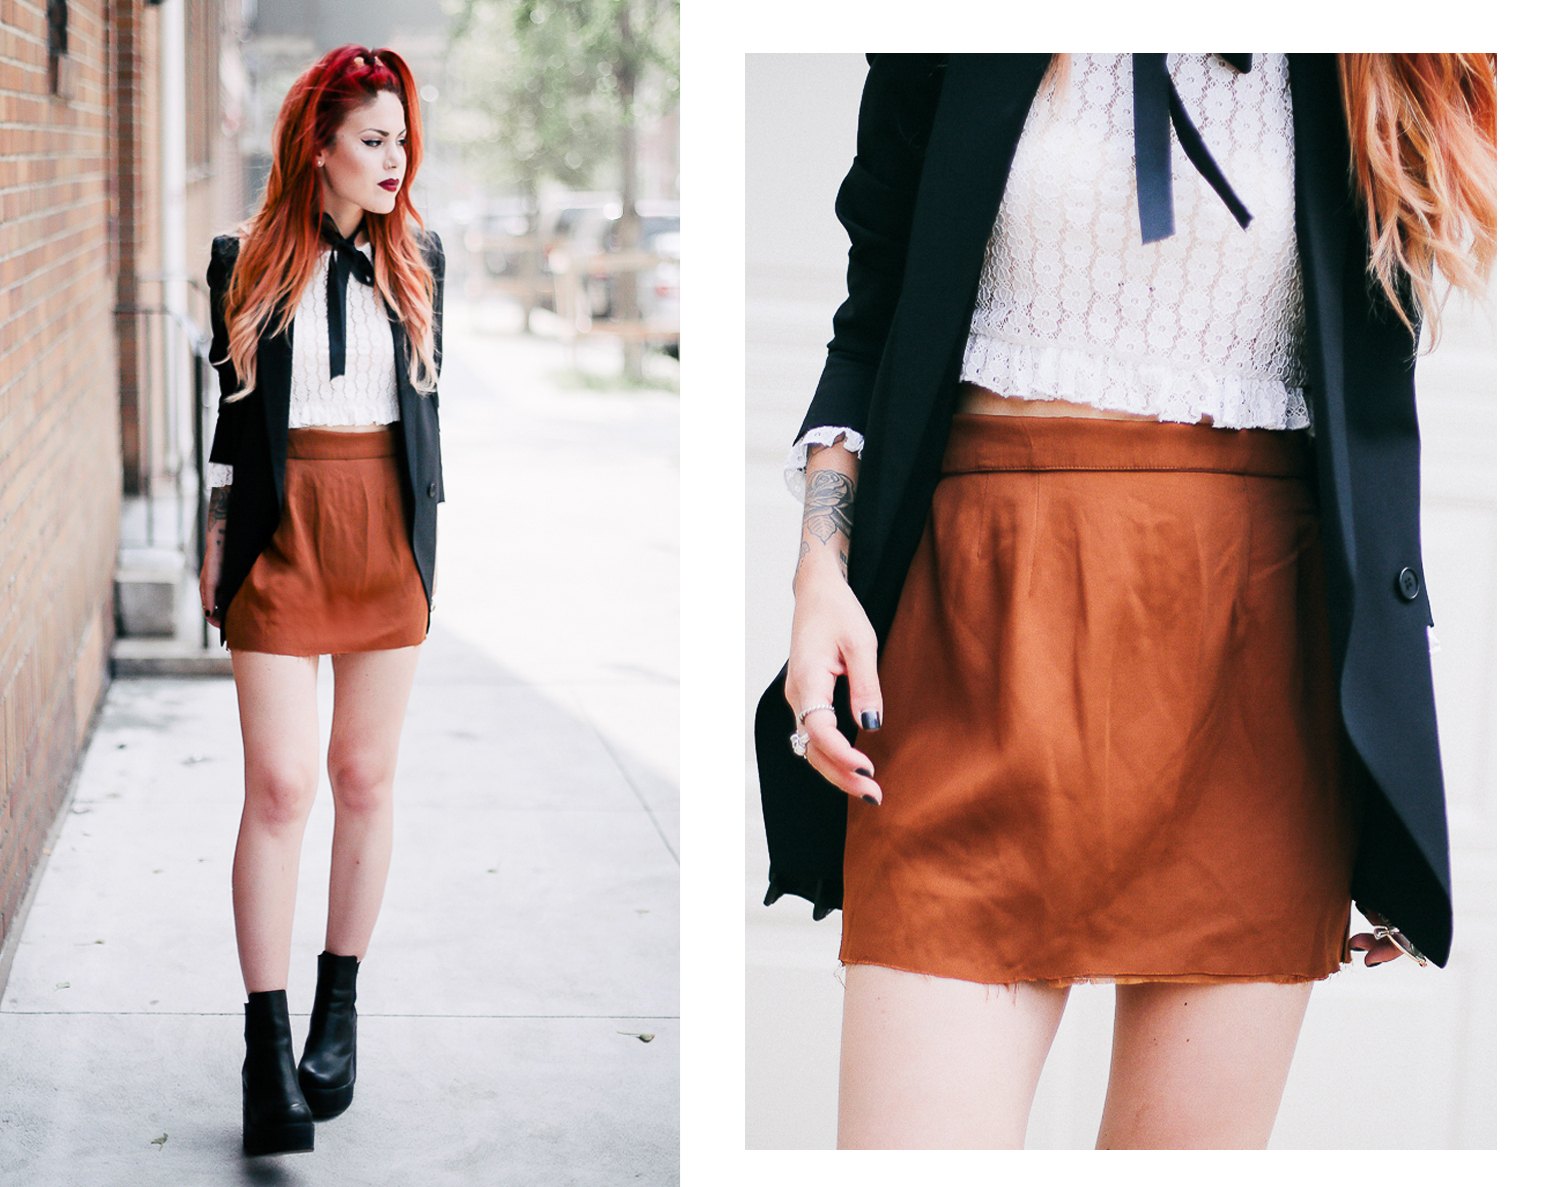 Le Happy wearing Motel Rocks crochet crop top and Theory blazer